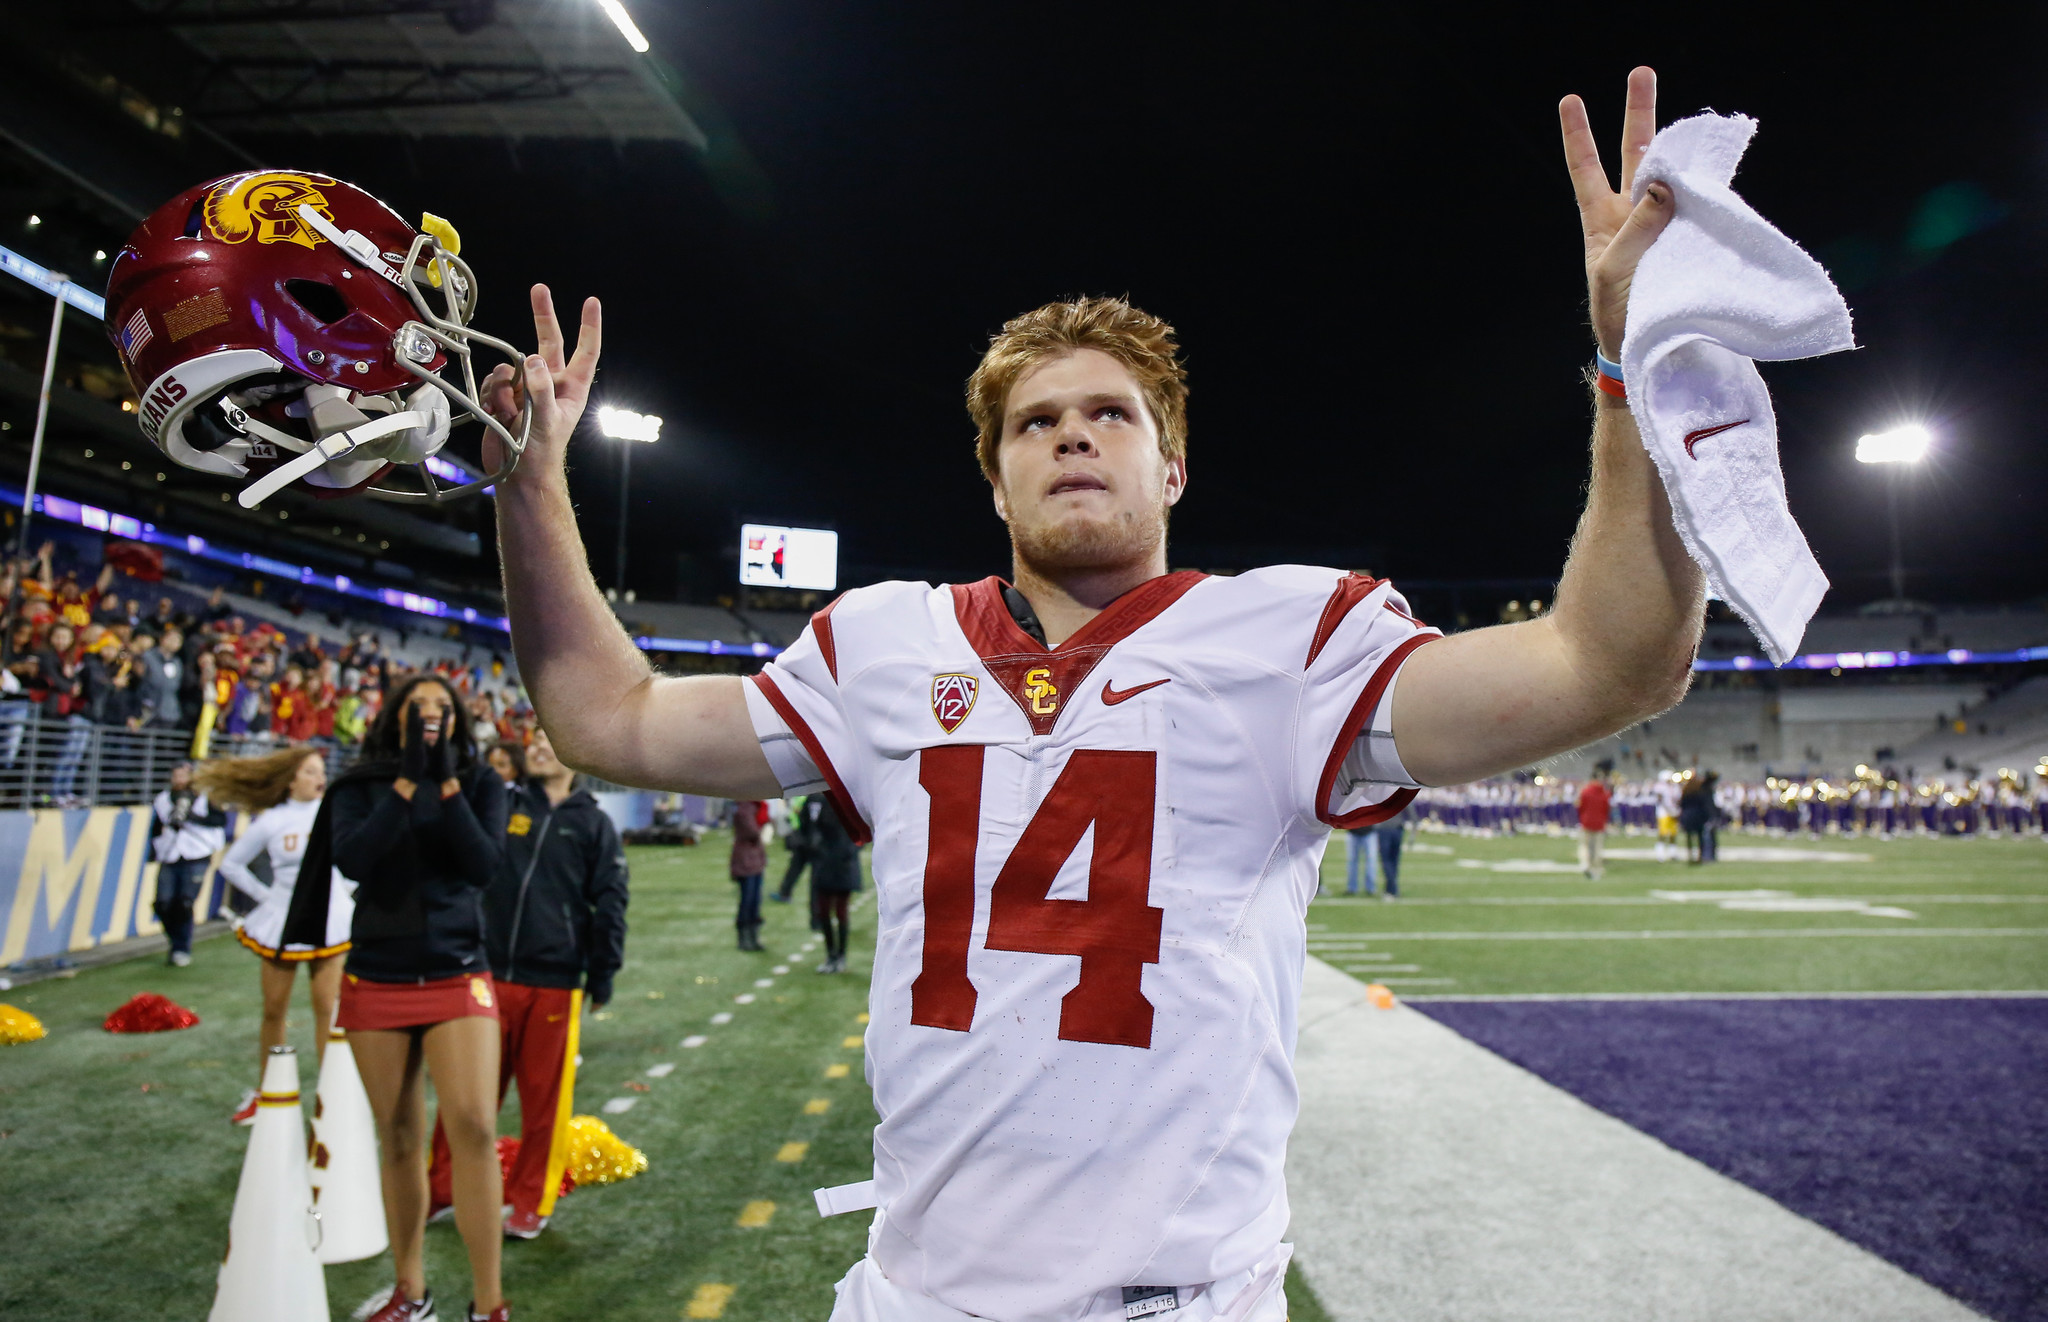 sam darnold rose bowl jersey